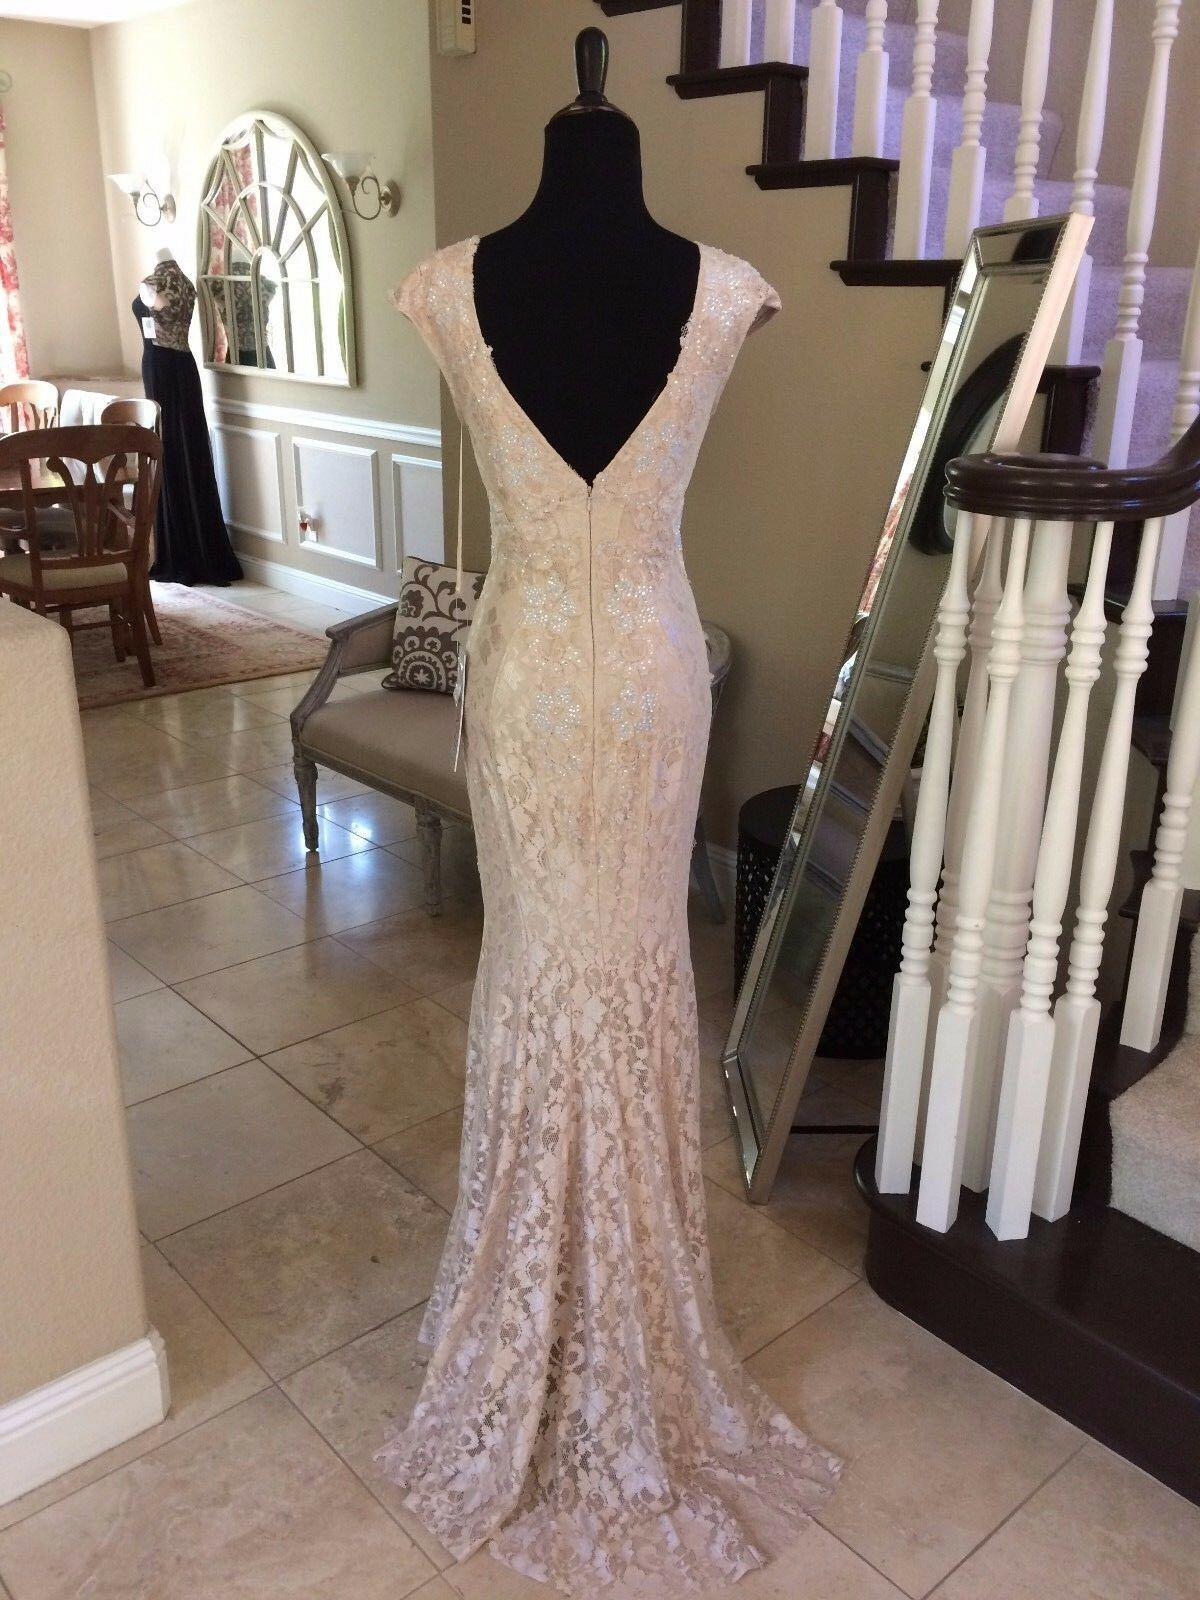 640 NWT NUDE JOVANI PROM PAGEANT PAGEANT PAGEANT FORMAL WEDDING DRESS GOWN SIZE 0 eaef64